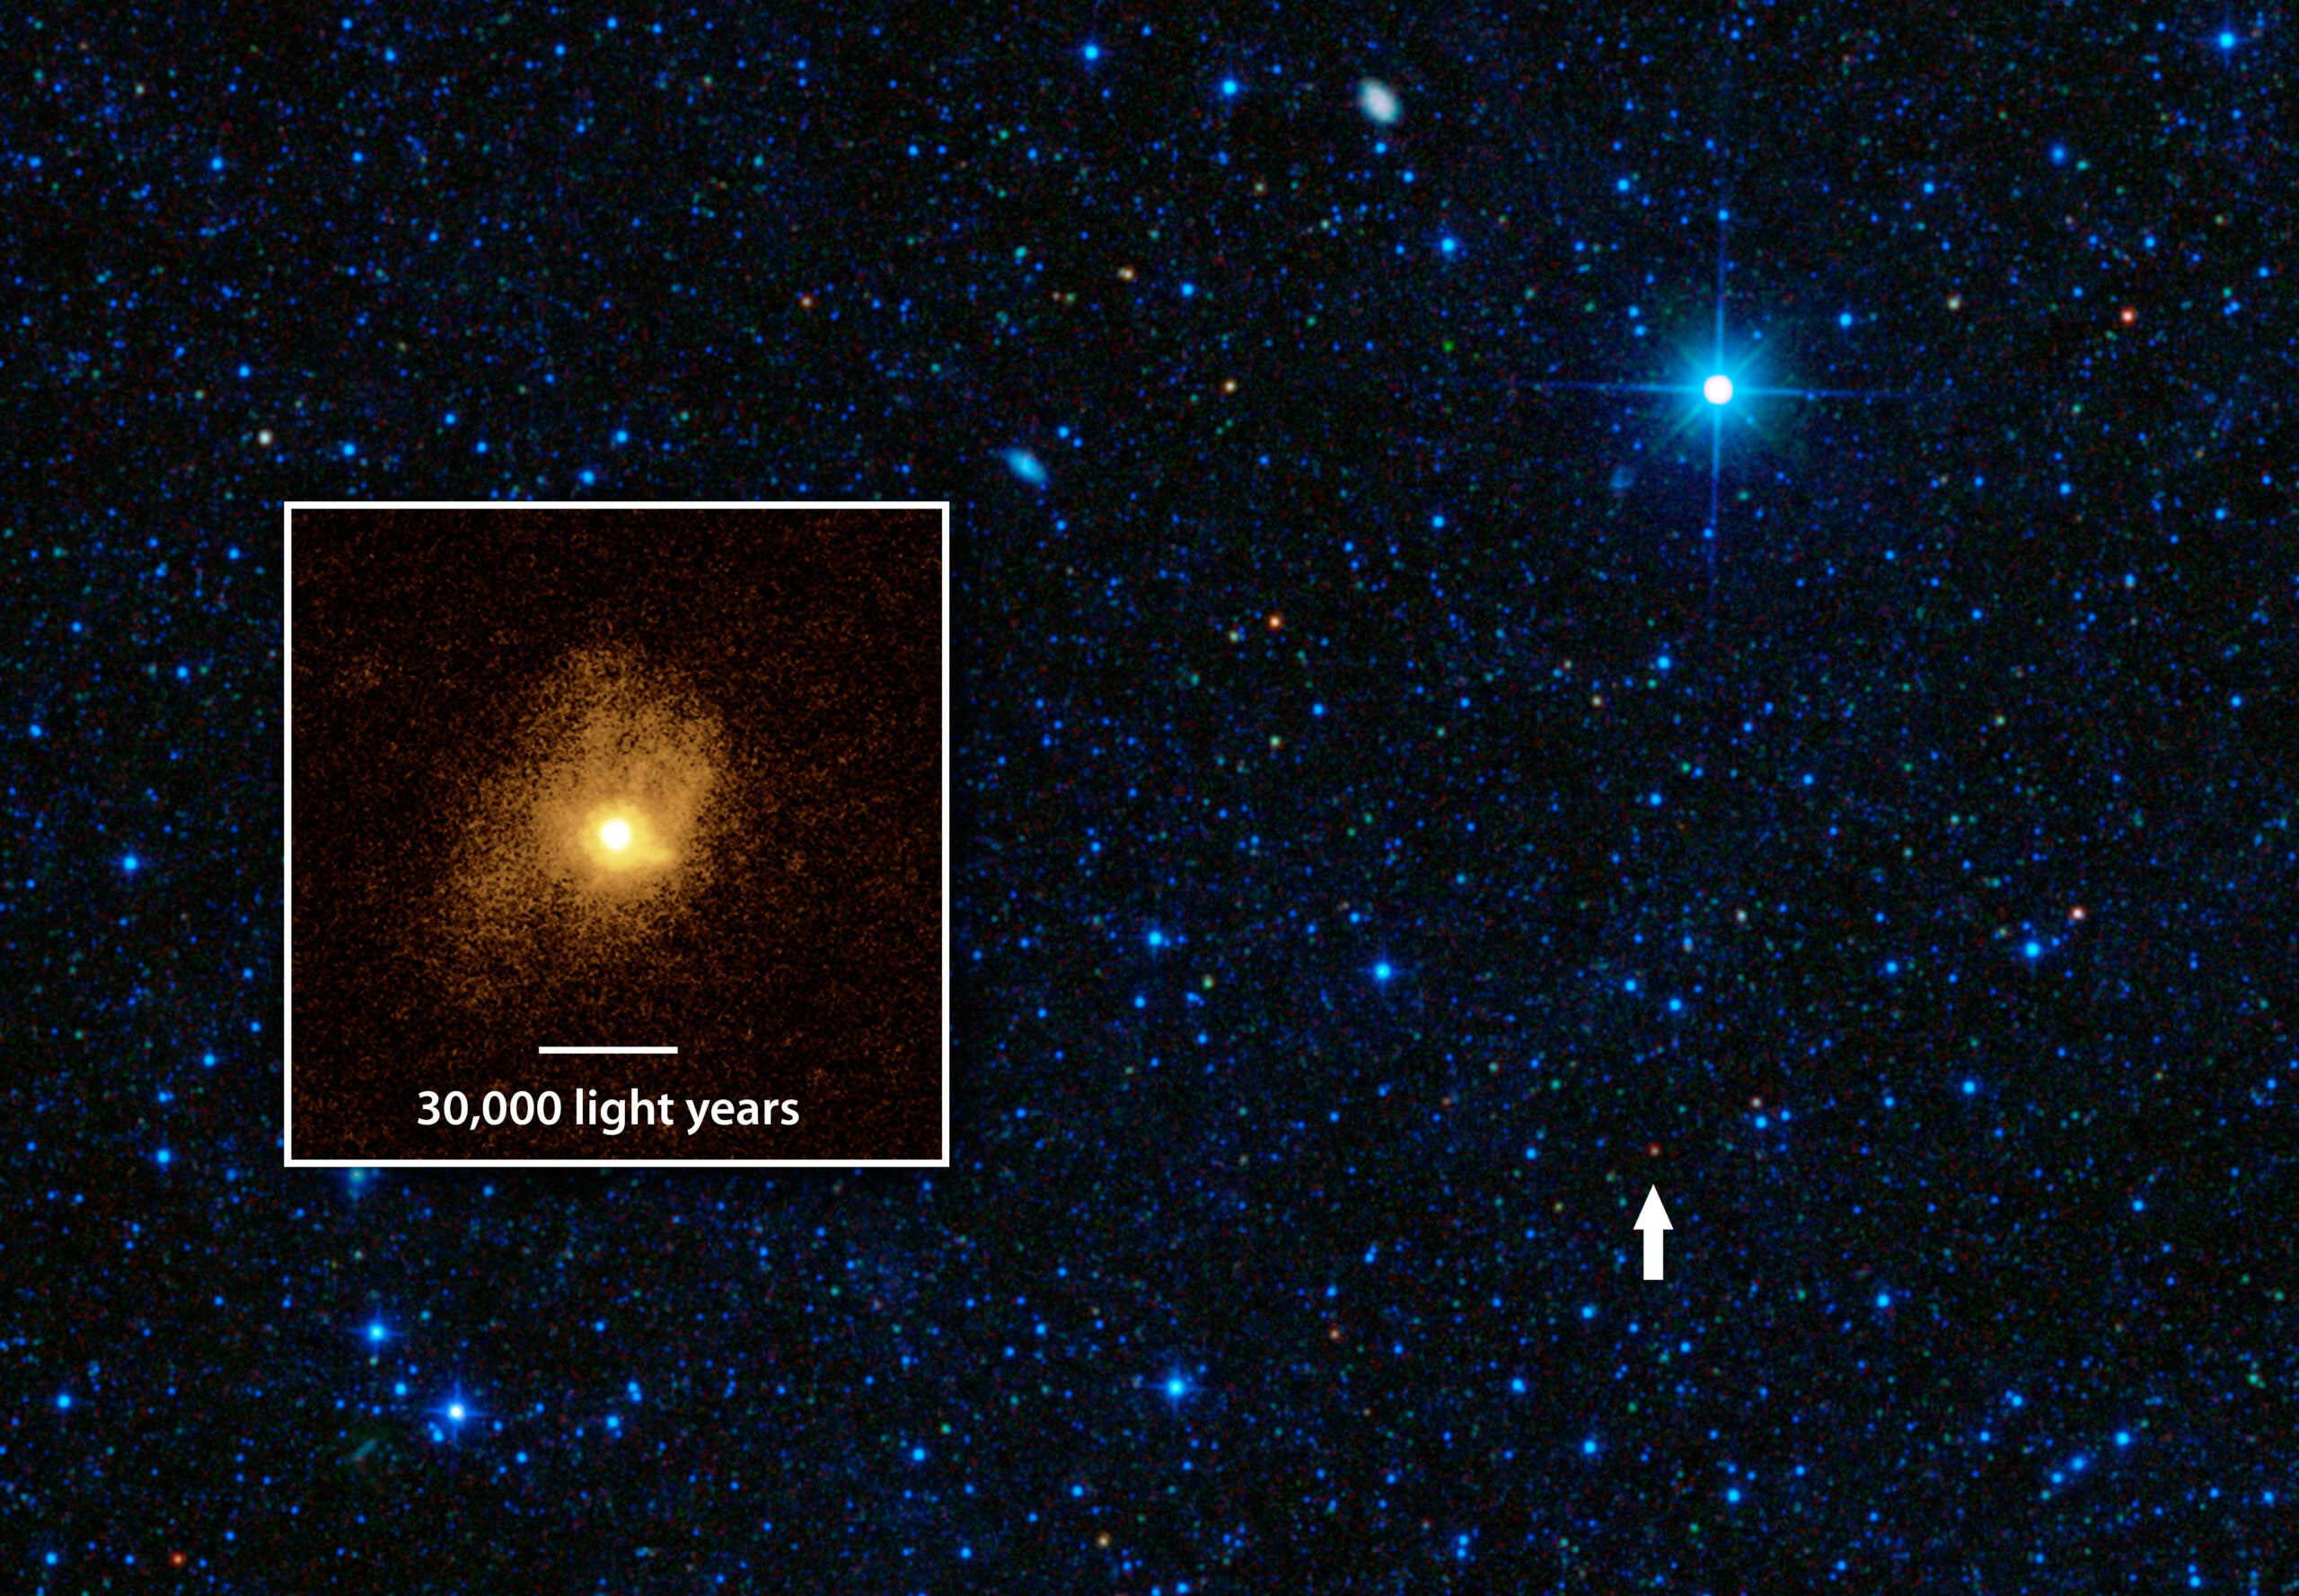 Conscientious Galaxy Uses All Its Fuel To Make New Stars, Leaving No Waste Behind